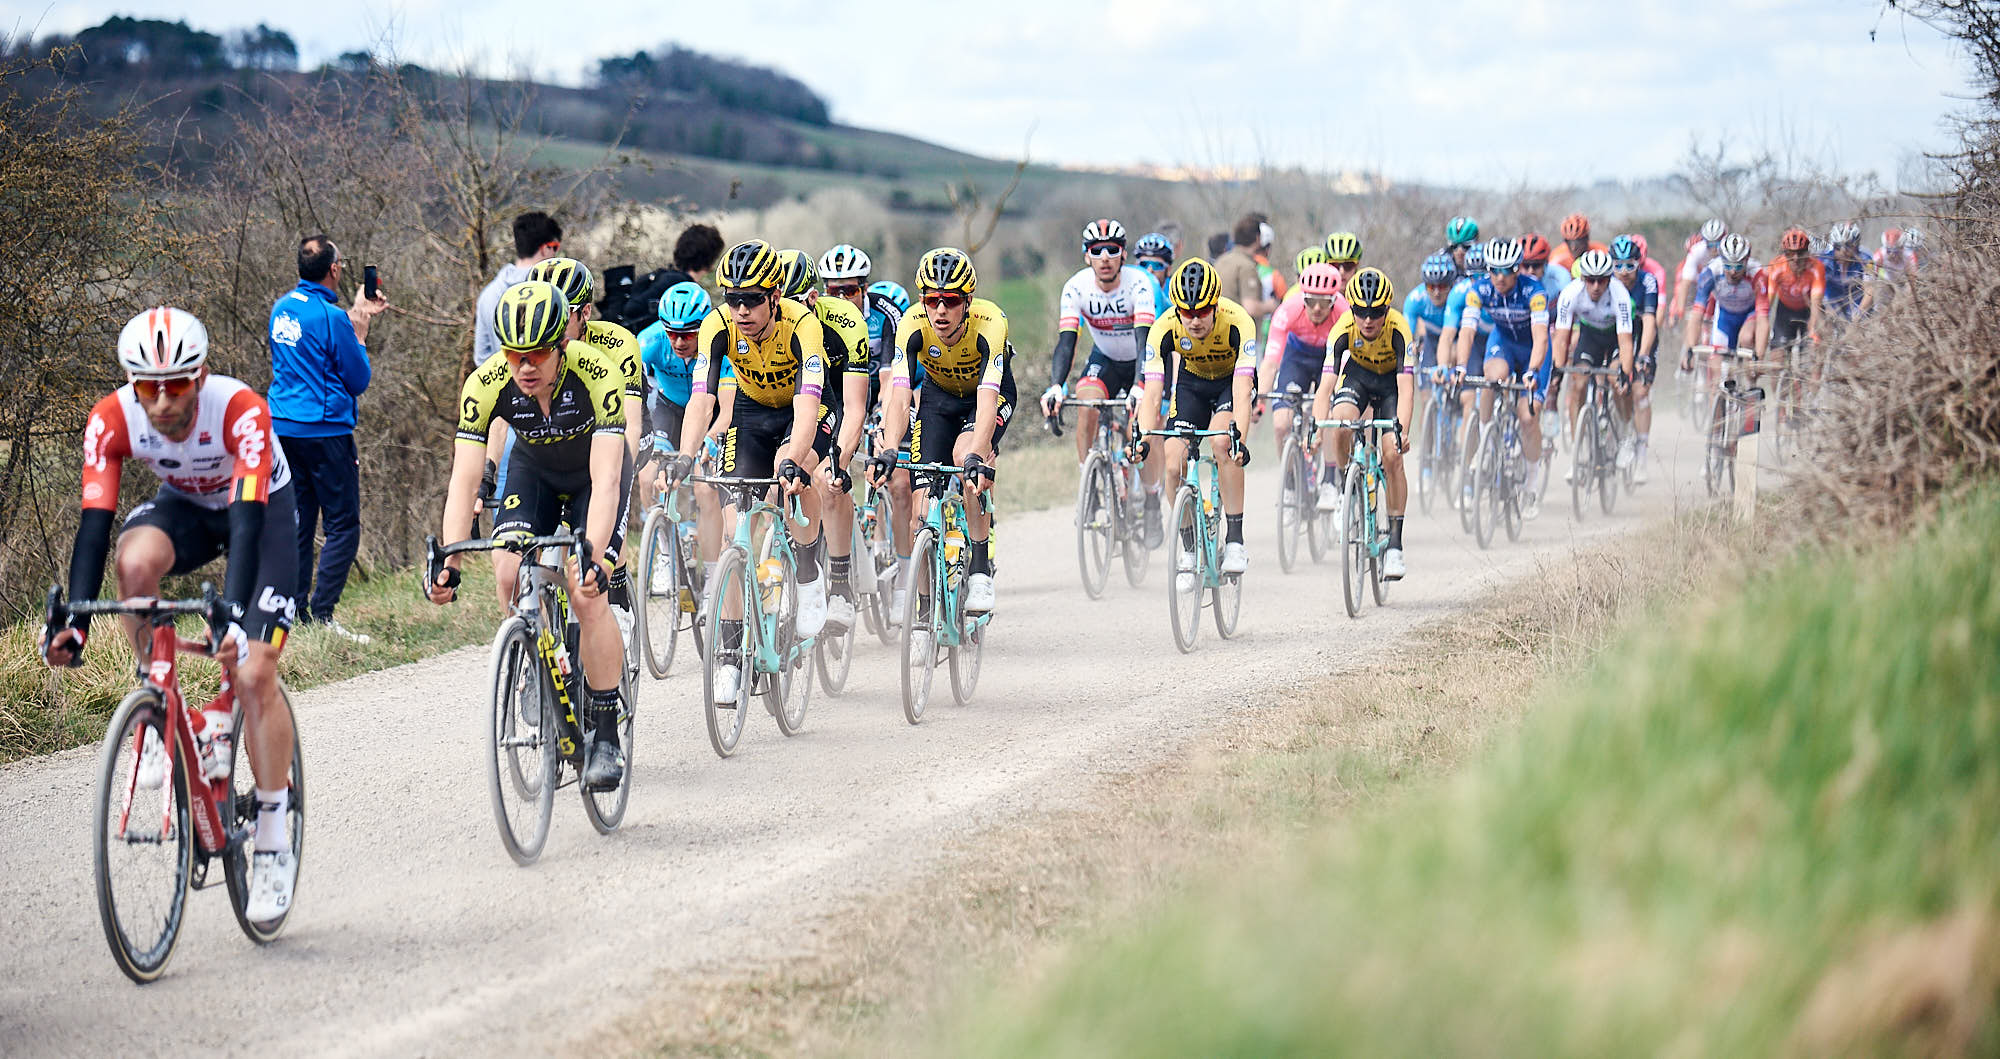 Cyclists on Strade Bianche, or literally white roads